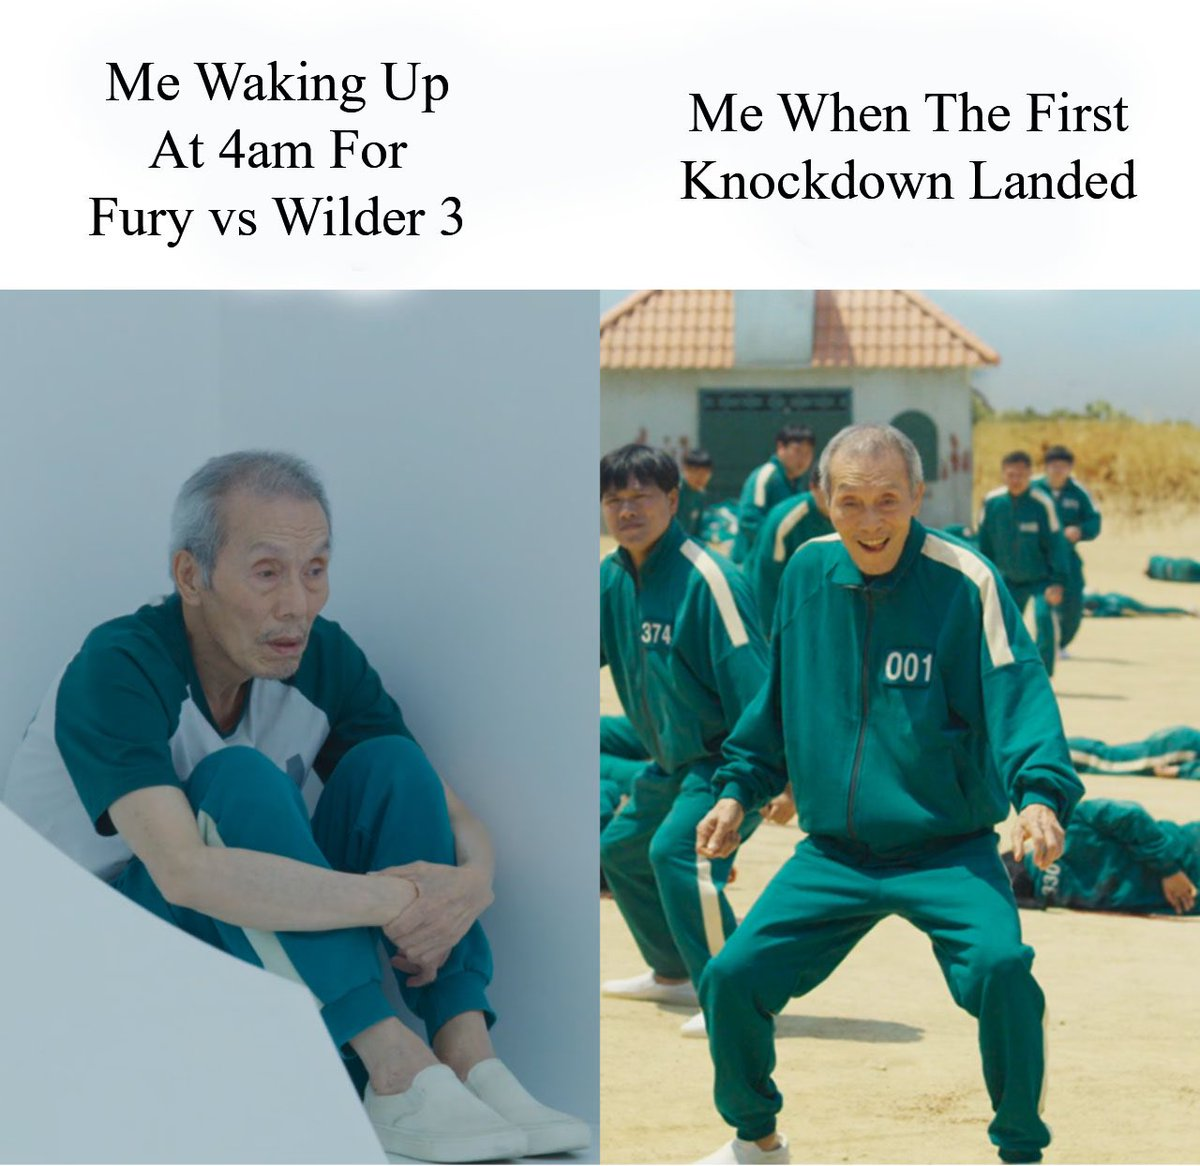 Accurate 😆 #FuryWilder3 #Boxing